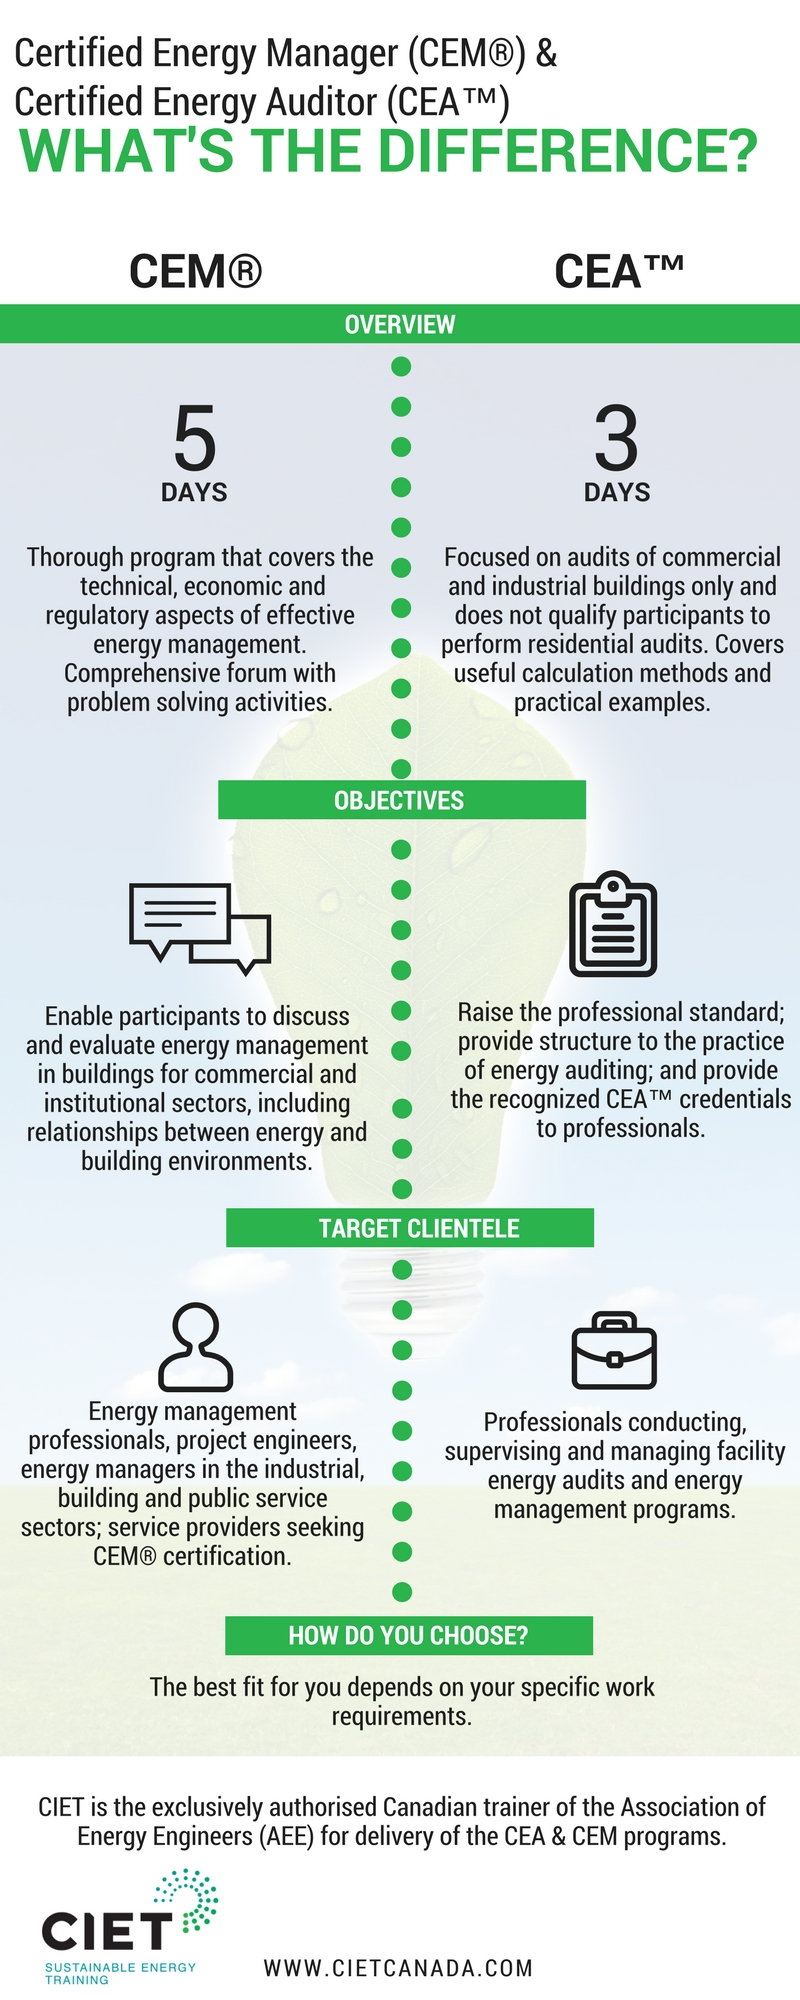 Ciet Certified Energy Manager Vs Certified Energy Auditor